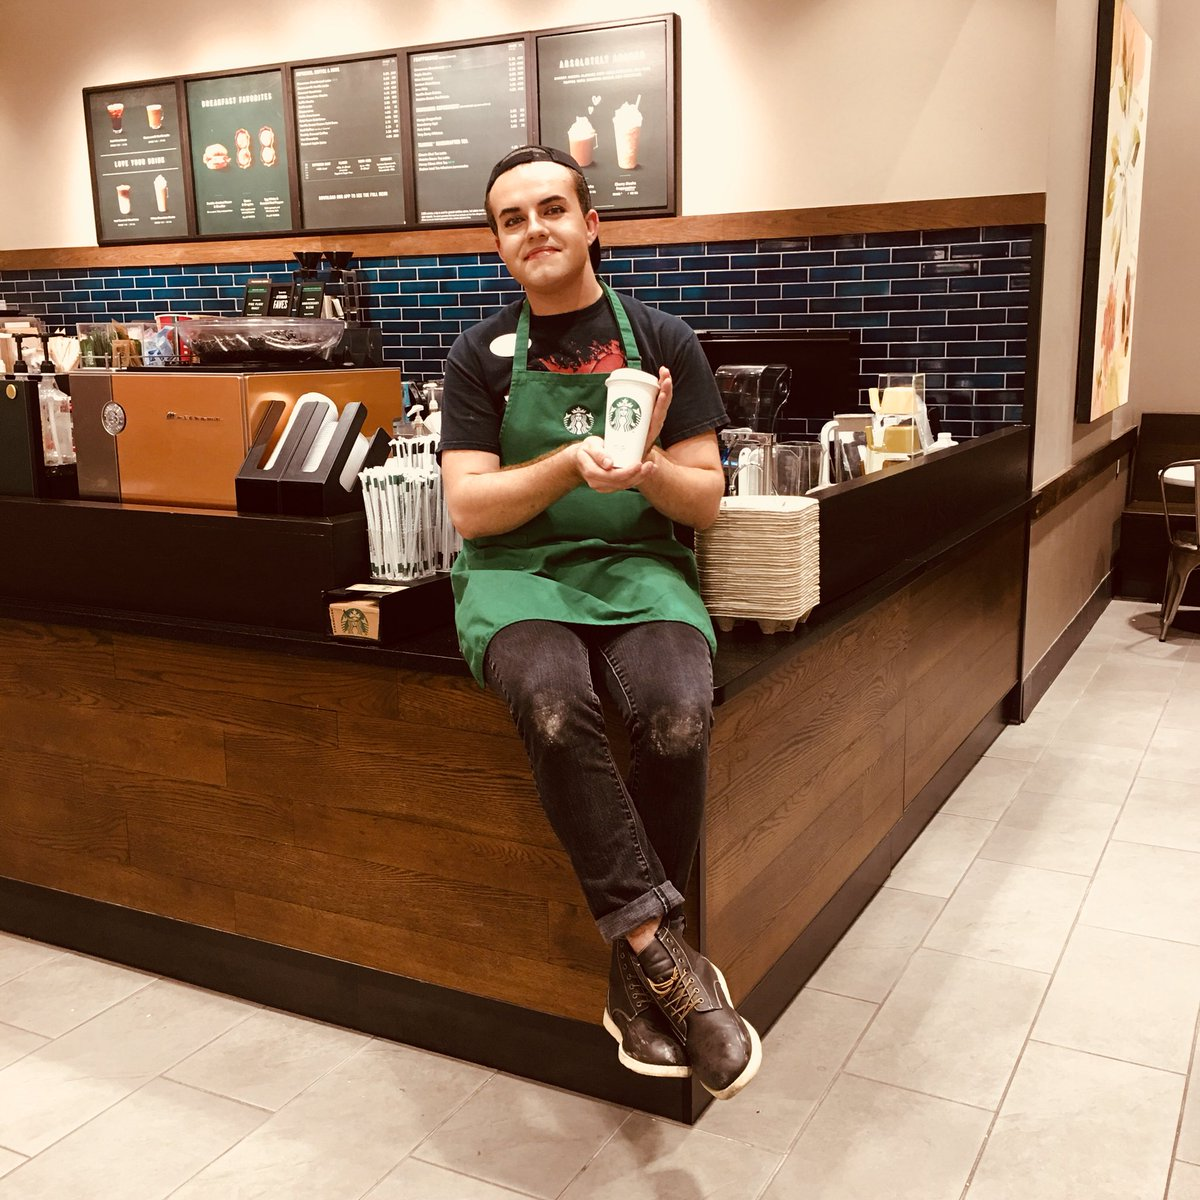 Cherry mocha rolled out today!! Come to T-1105 to experience the flavors of cherry and mocha, meeting our signature espresso!  #Cherrymocha #Starbucks #T1105 #Delishhhhh #comegetyousomeee <br>http://pic.twitter.com/fpBDVX874c